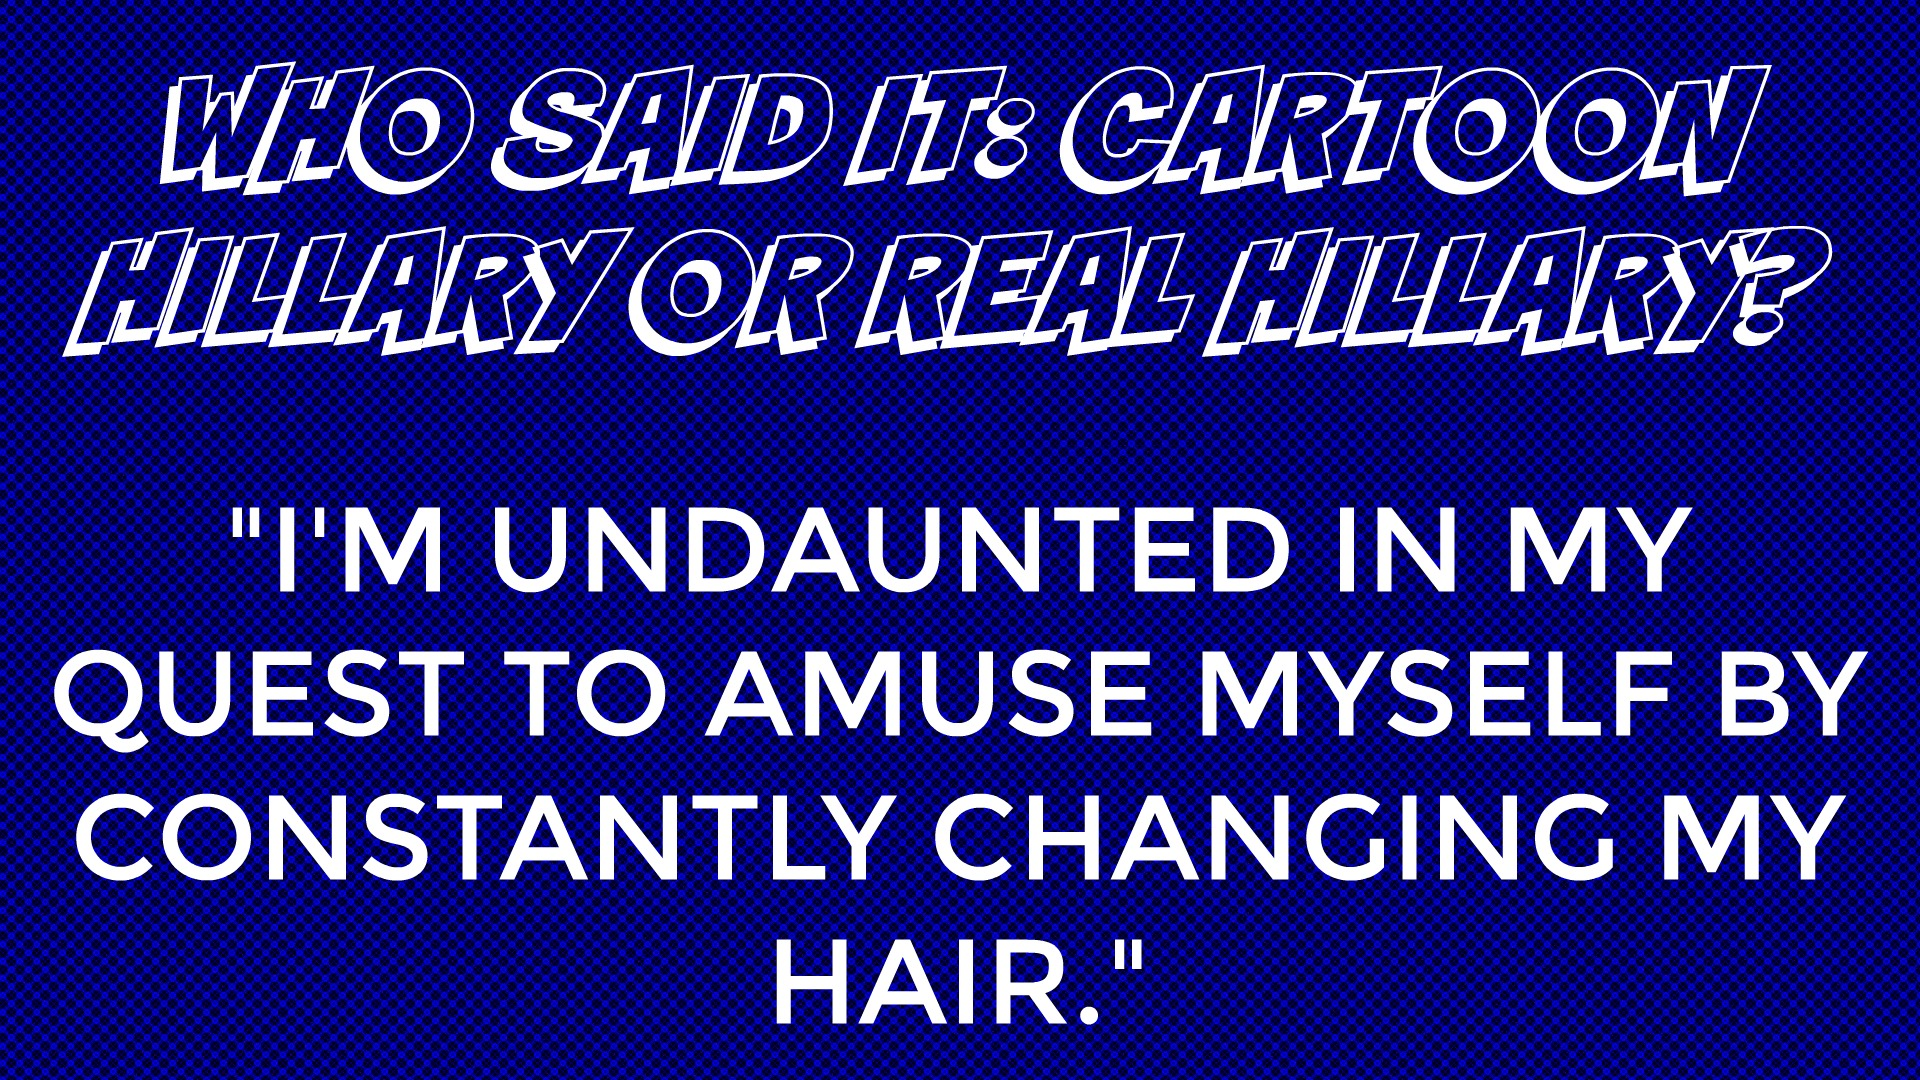 Who said it: Cartoon Hillary or Real Hillary?